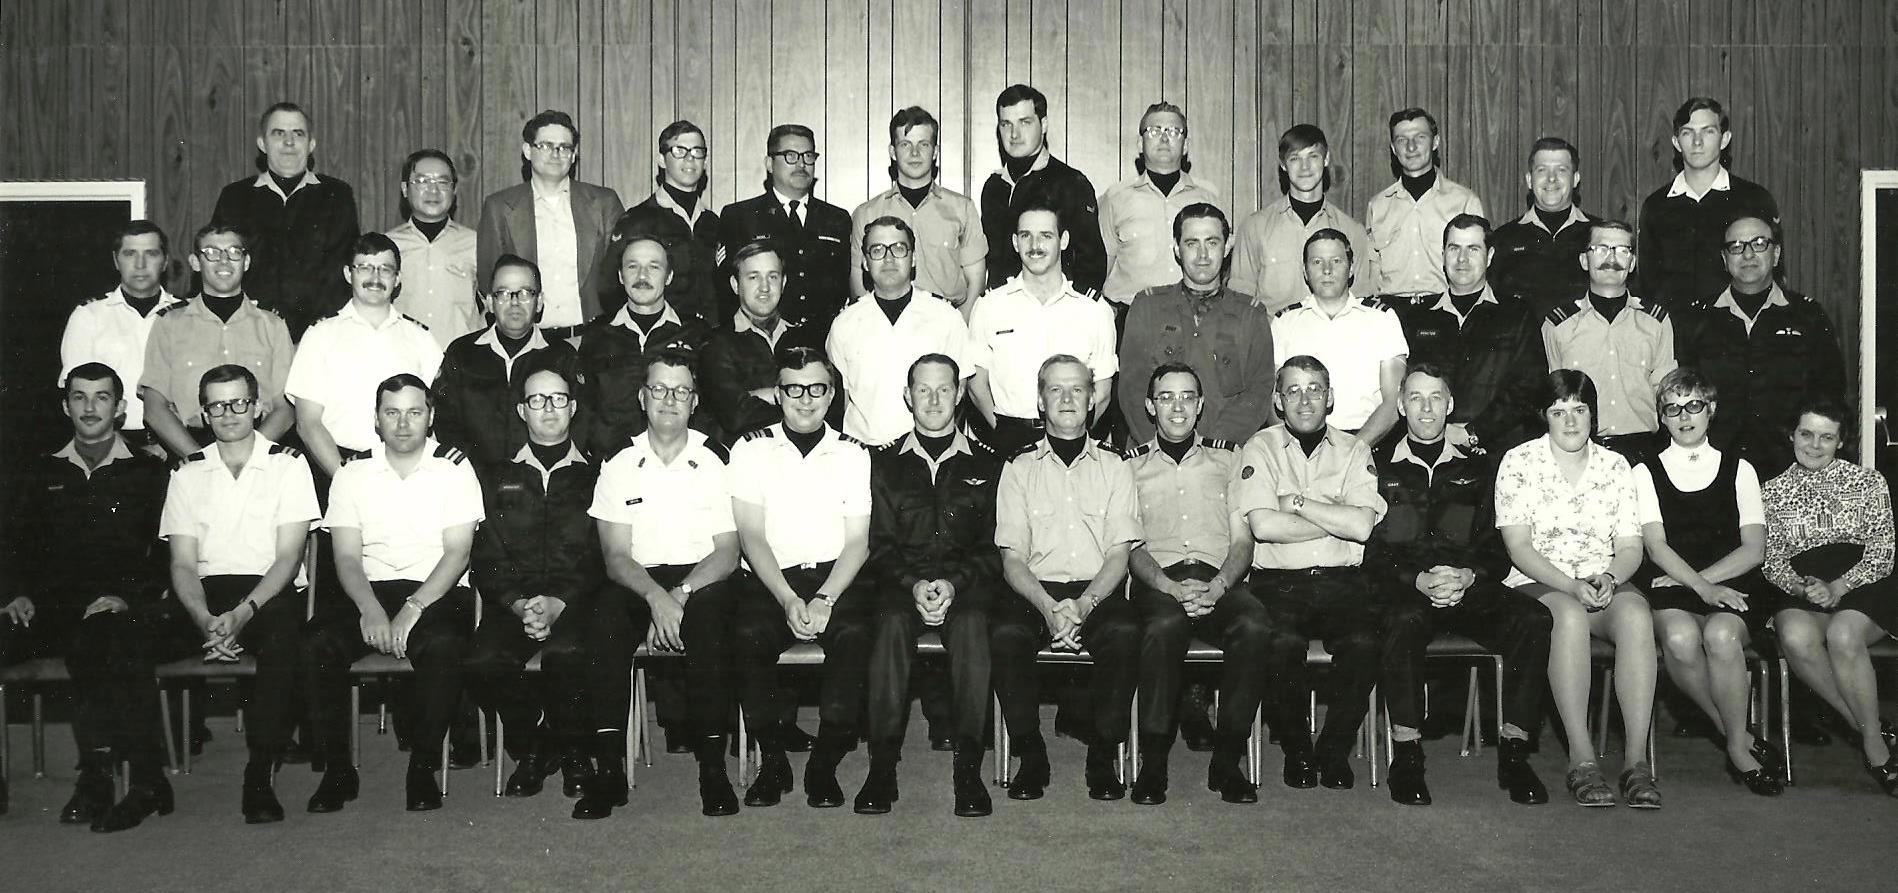 1 Canadian Mechanized Brigade Group, Sarcee Barracks, CFB Calgary, Alberta, June 1975 (Author standing in the centre row, 8th from the left)